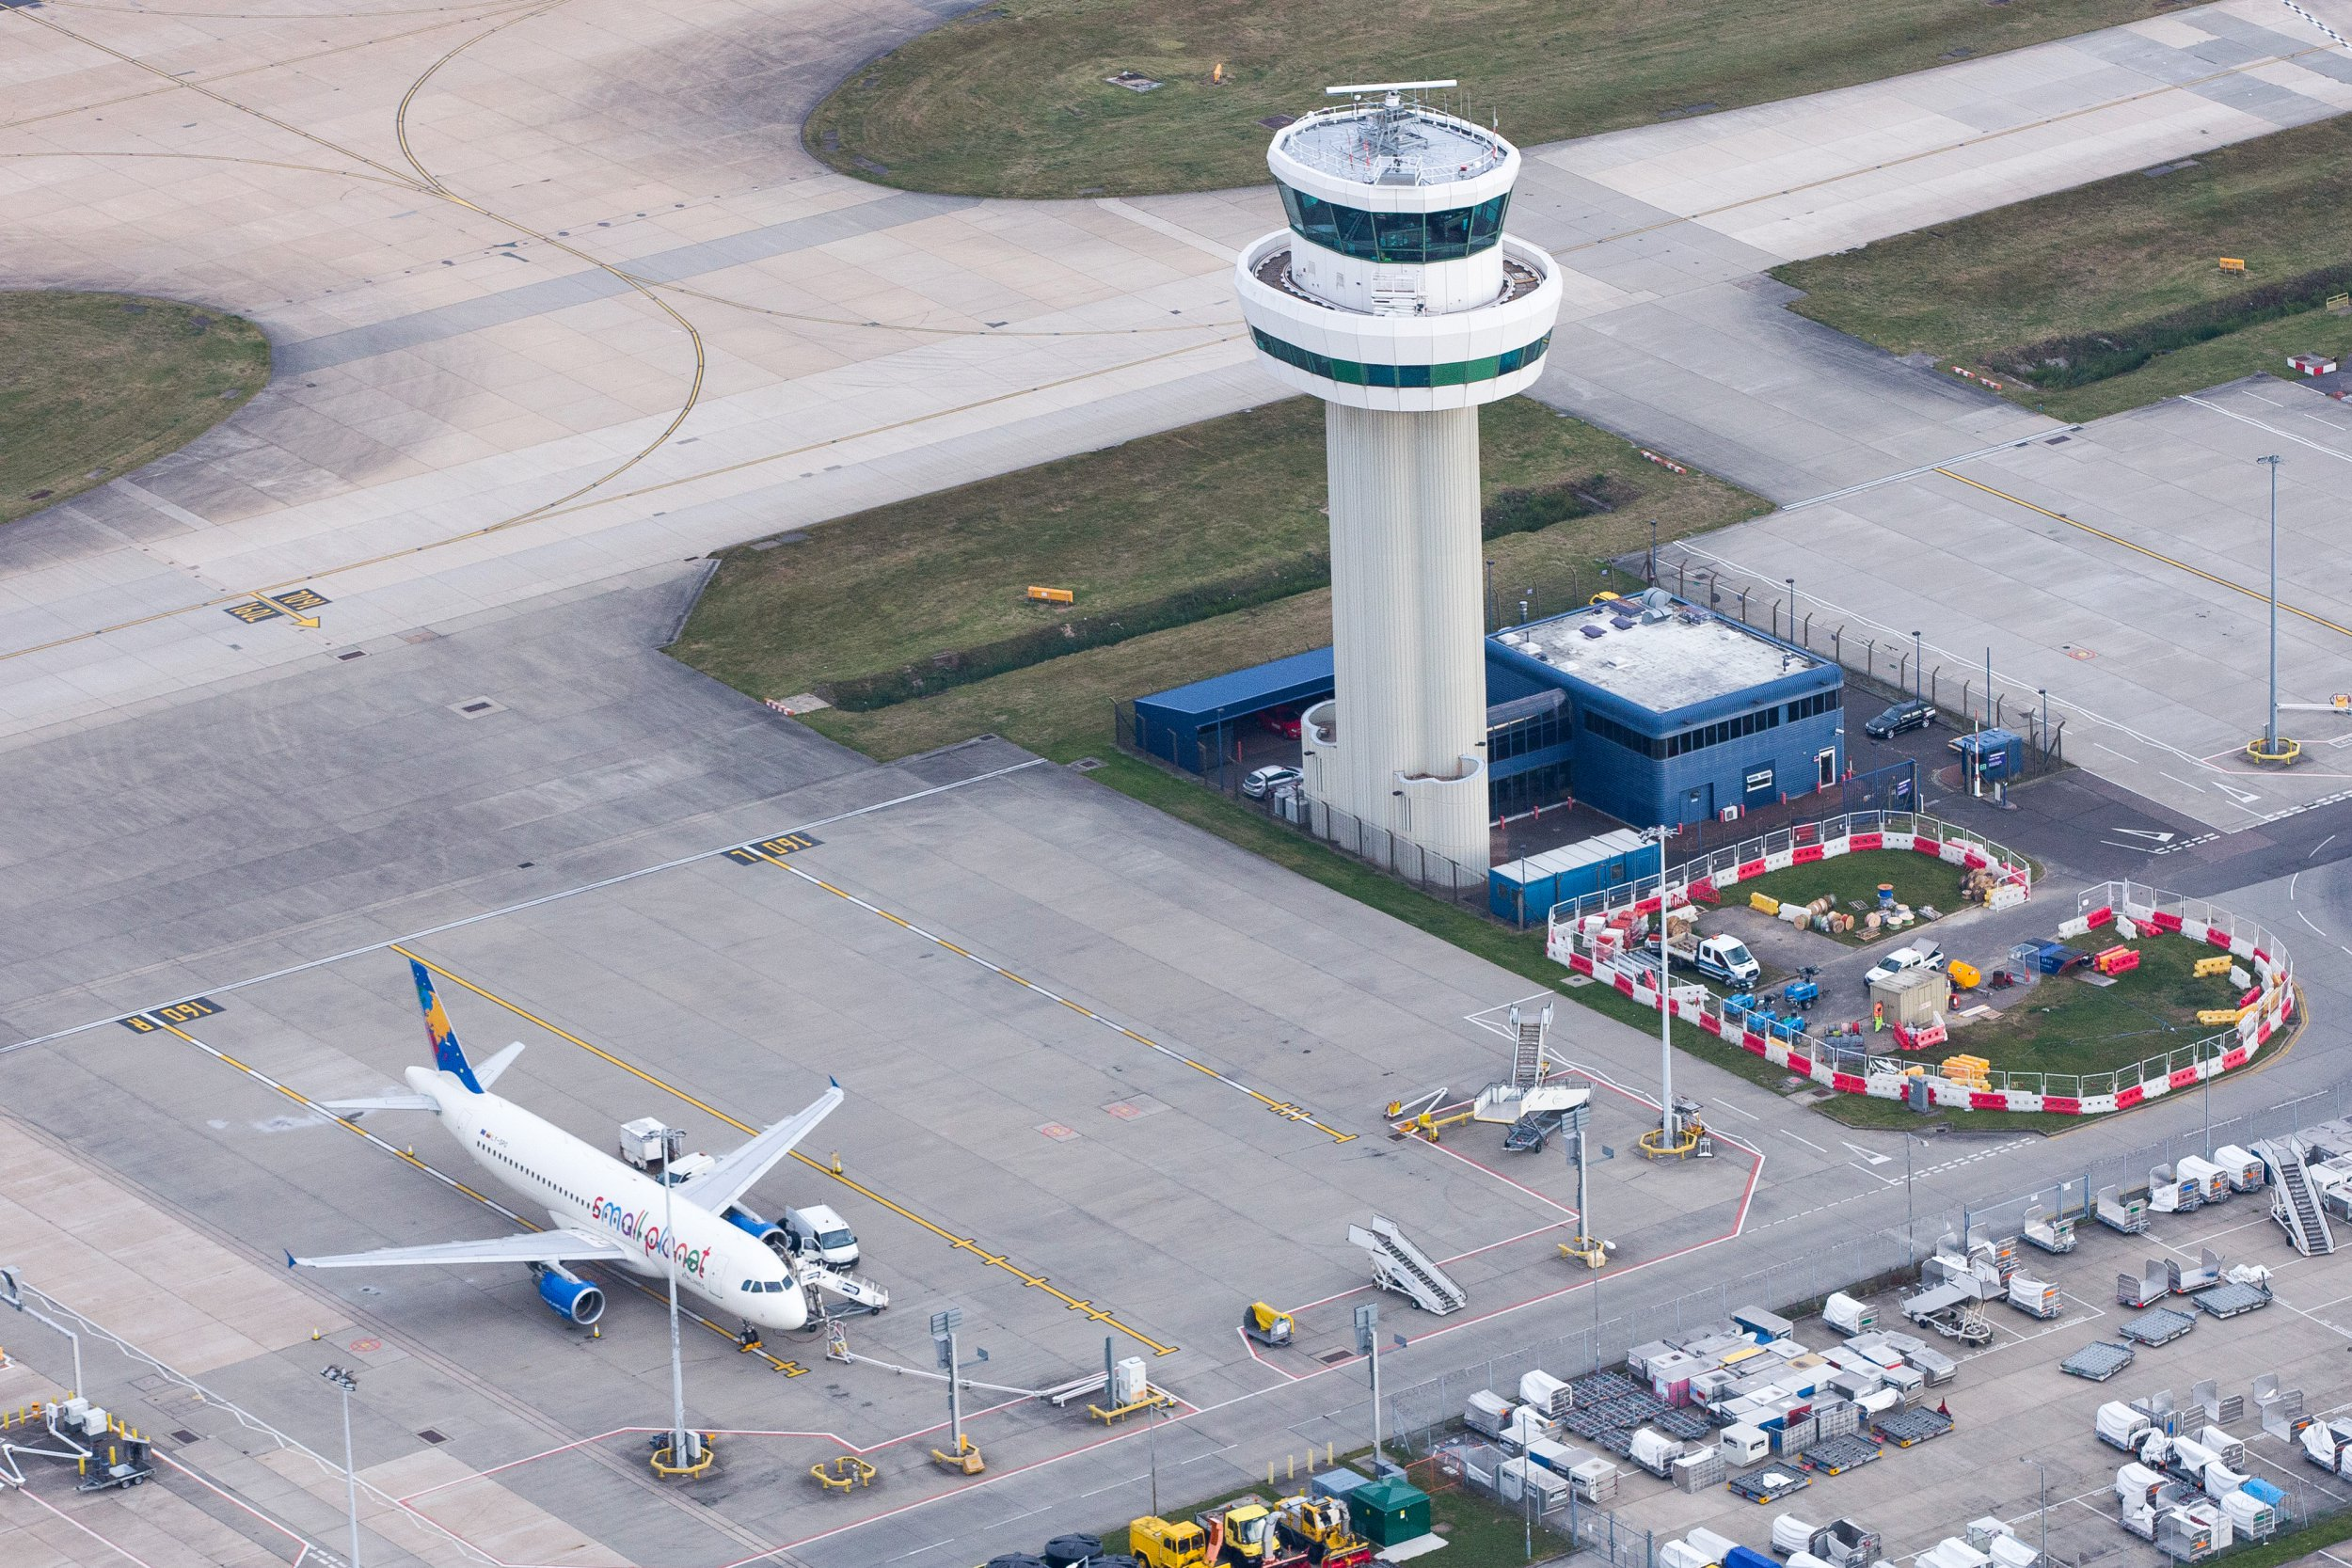 The control tower stands at London Gatwick airport in this aerial view taken over Crawley, U.K., on Monday, Oct. 24, 2016. The U.K. government will decide next week whether to expand London's main airport, Heathrow, or its rival Gatwick putting an end to decades of prevarication over what has become one of the most contentious issues in British politics. Photographer: Jason Alden/Bloomberg via Getty Images